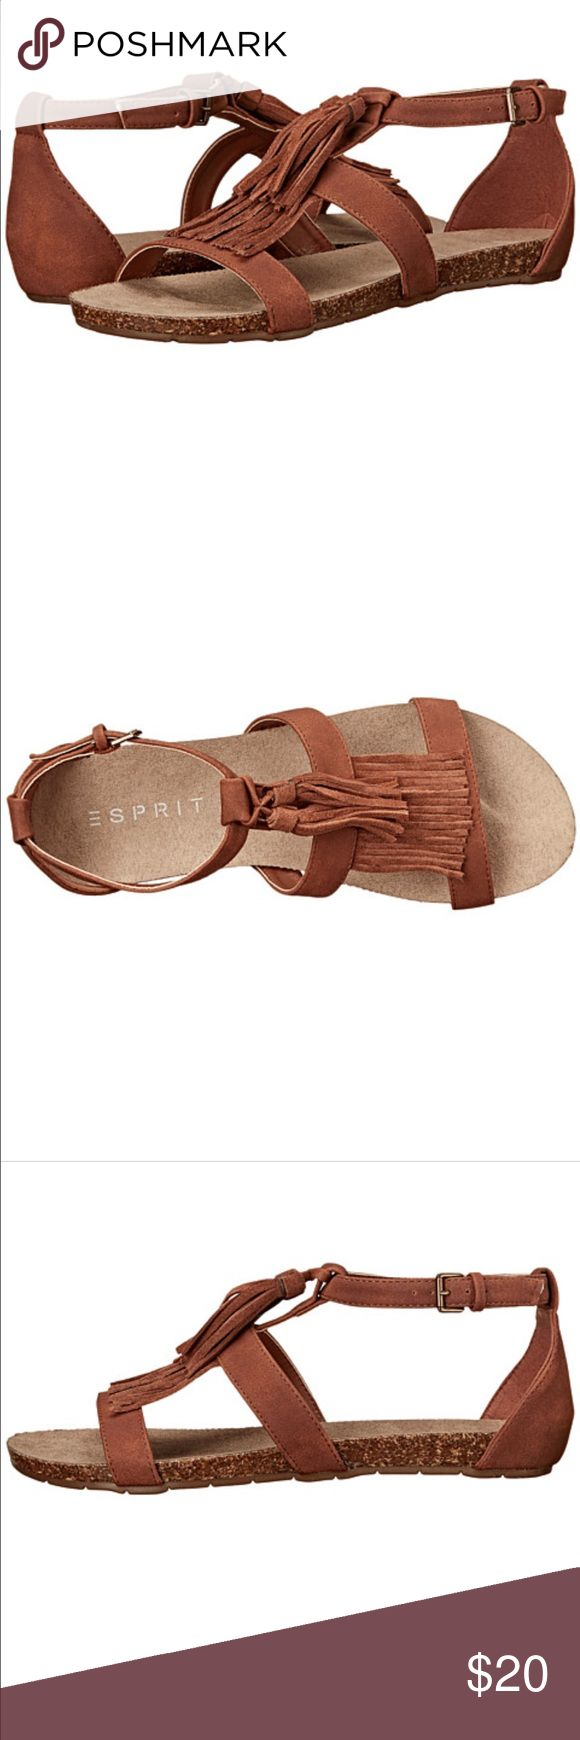 Cognac sandals!!!❤️ NEW Beautiful gorgeous sandals!!! Never been worn because they say size 8, but actually fit like a 9!!! Make them yours!!! Espirit Shoes Sandals